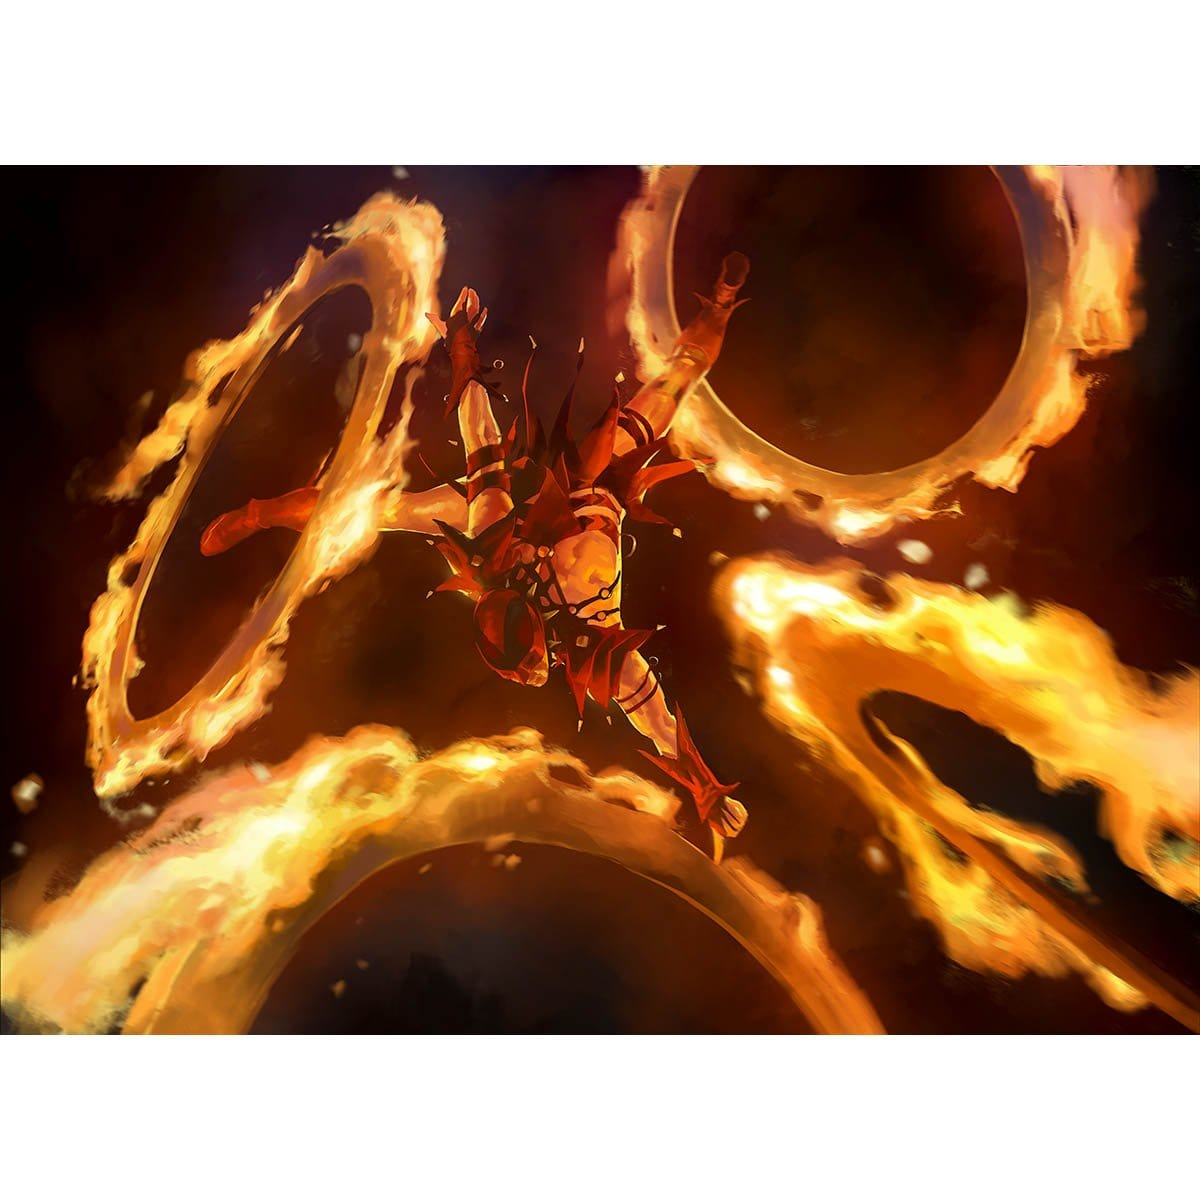 Rakdos Firewheeler Print - Print - Original Magic Art - Accessories for Magic the Gathering and other card games